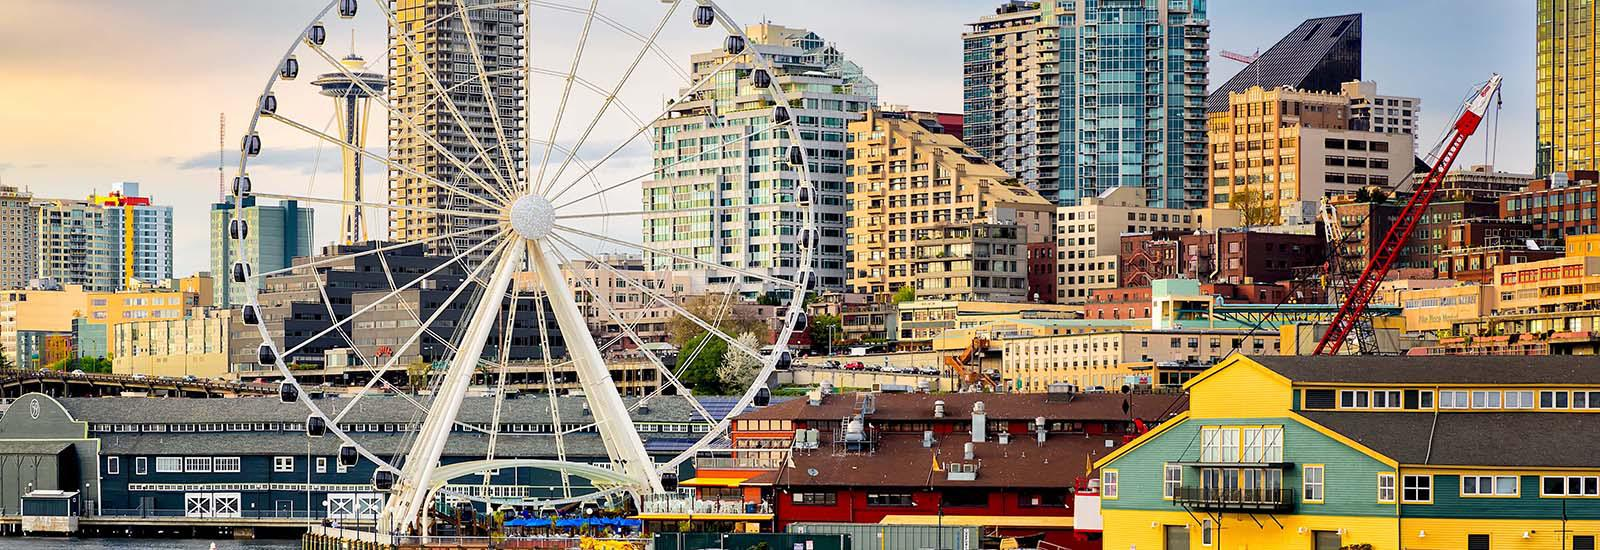 Seattle Waterfront Wheel